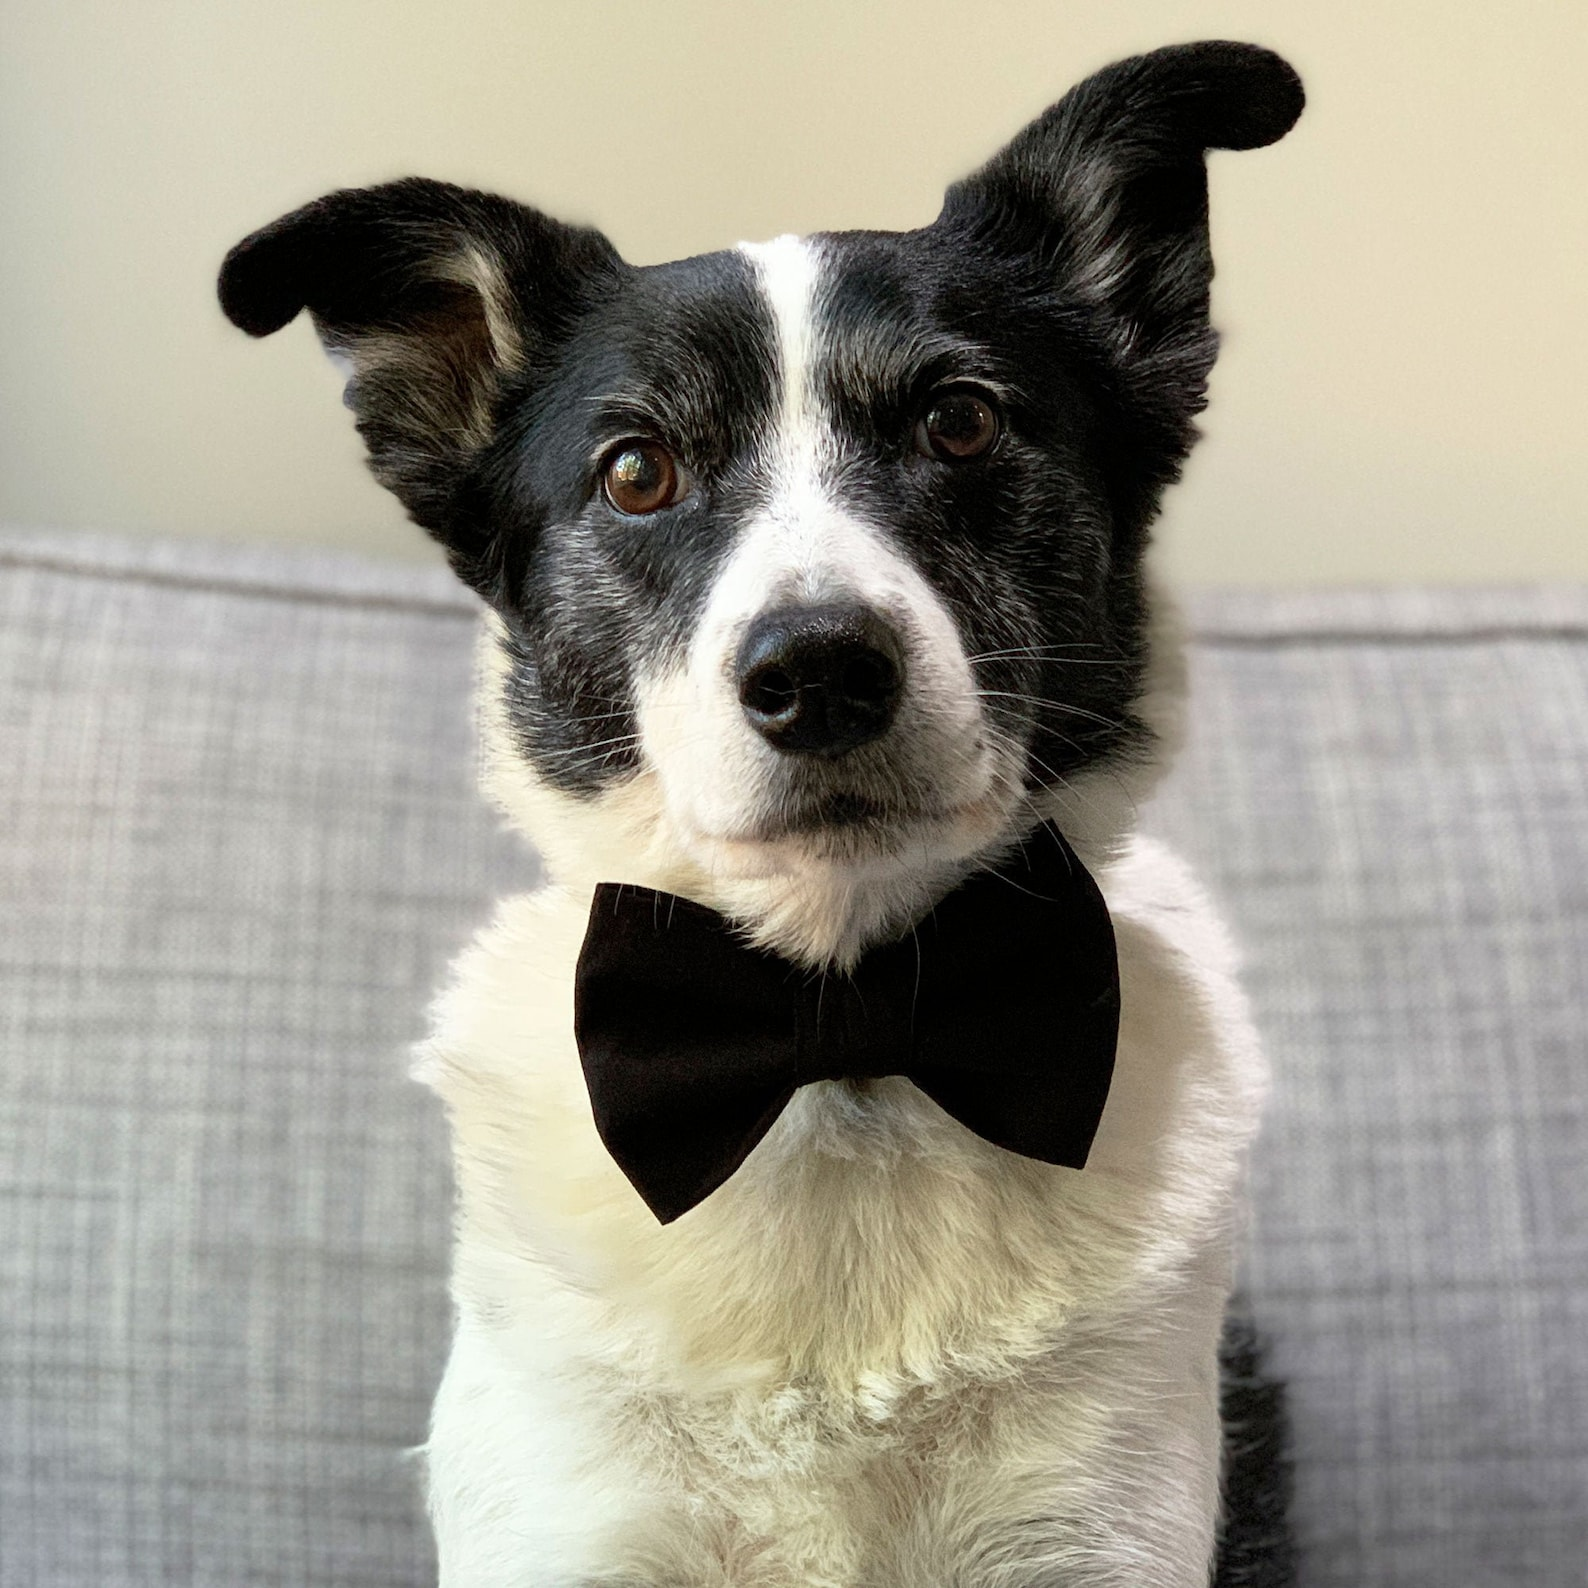 Dog wearing a black bow tie